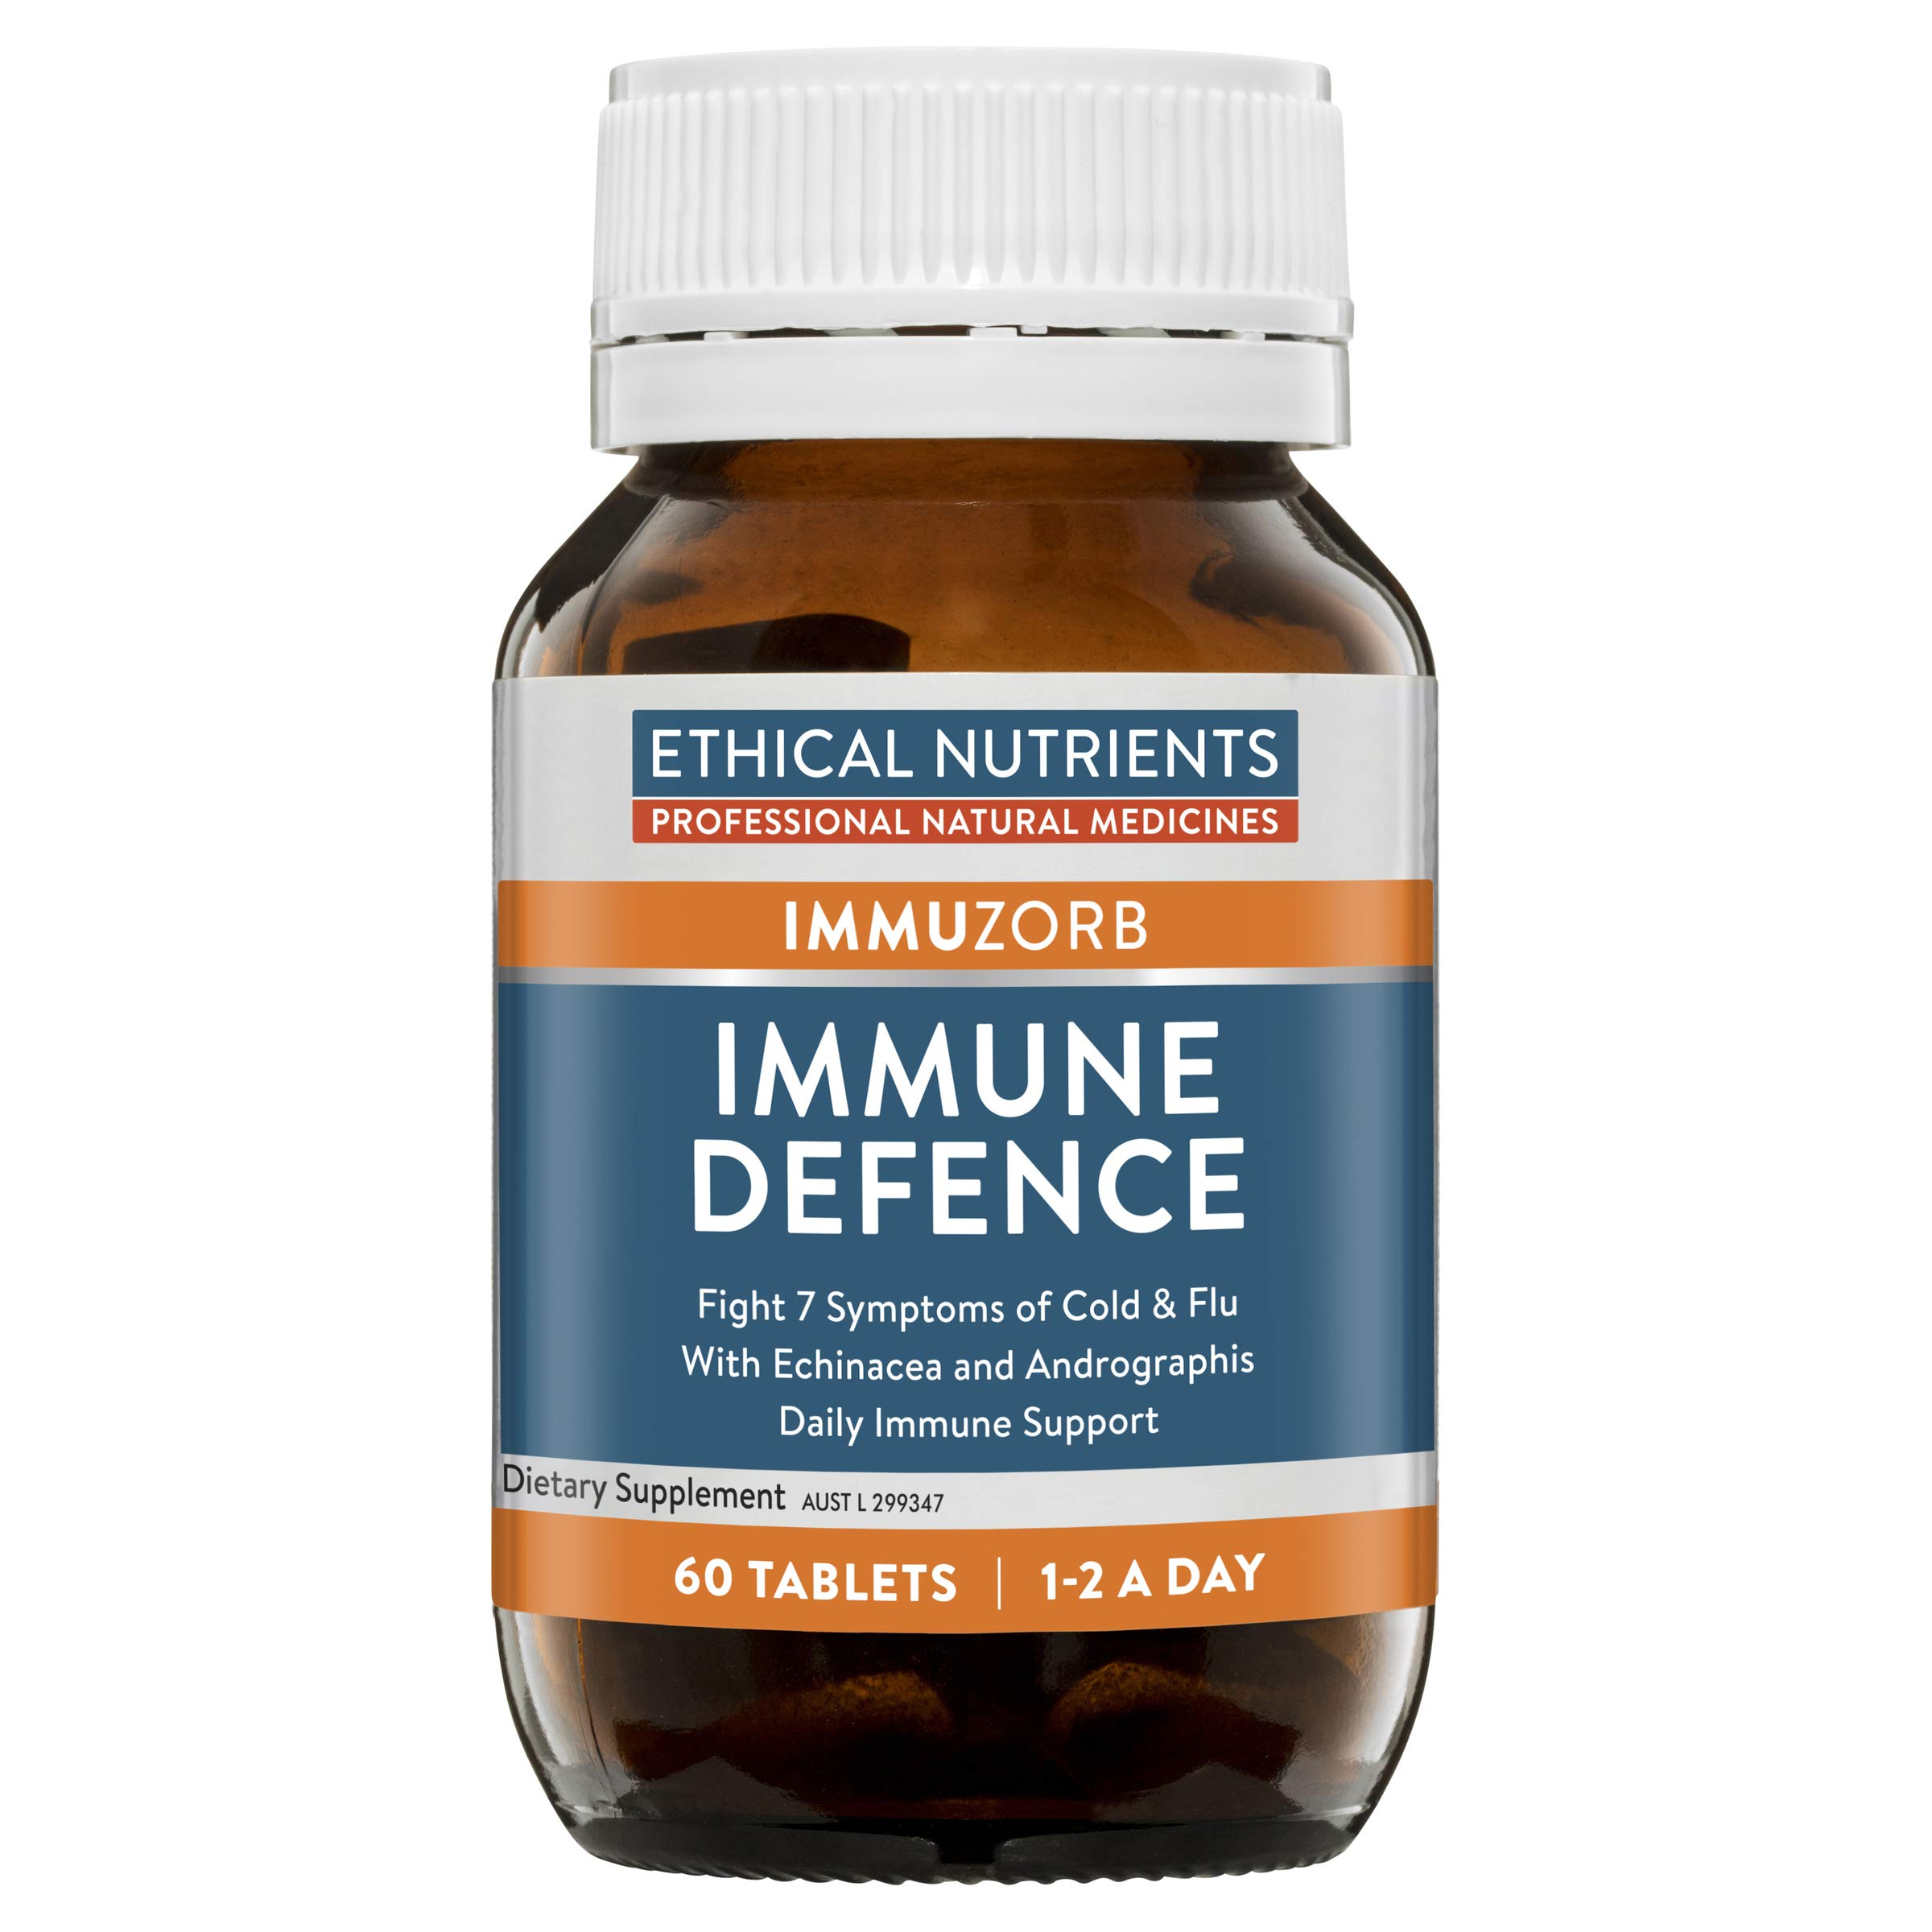 Ethical Nutrients Immune Defence Cough Cold Relief 60 Tabs by Ethical